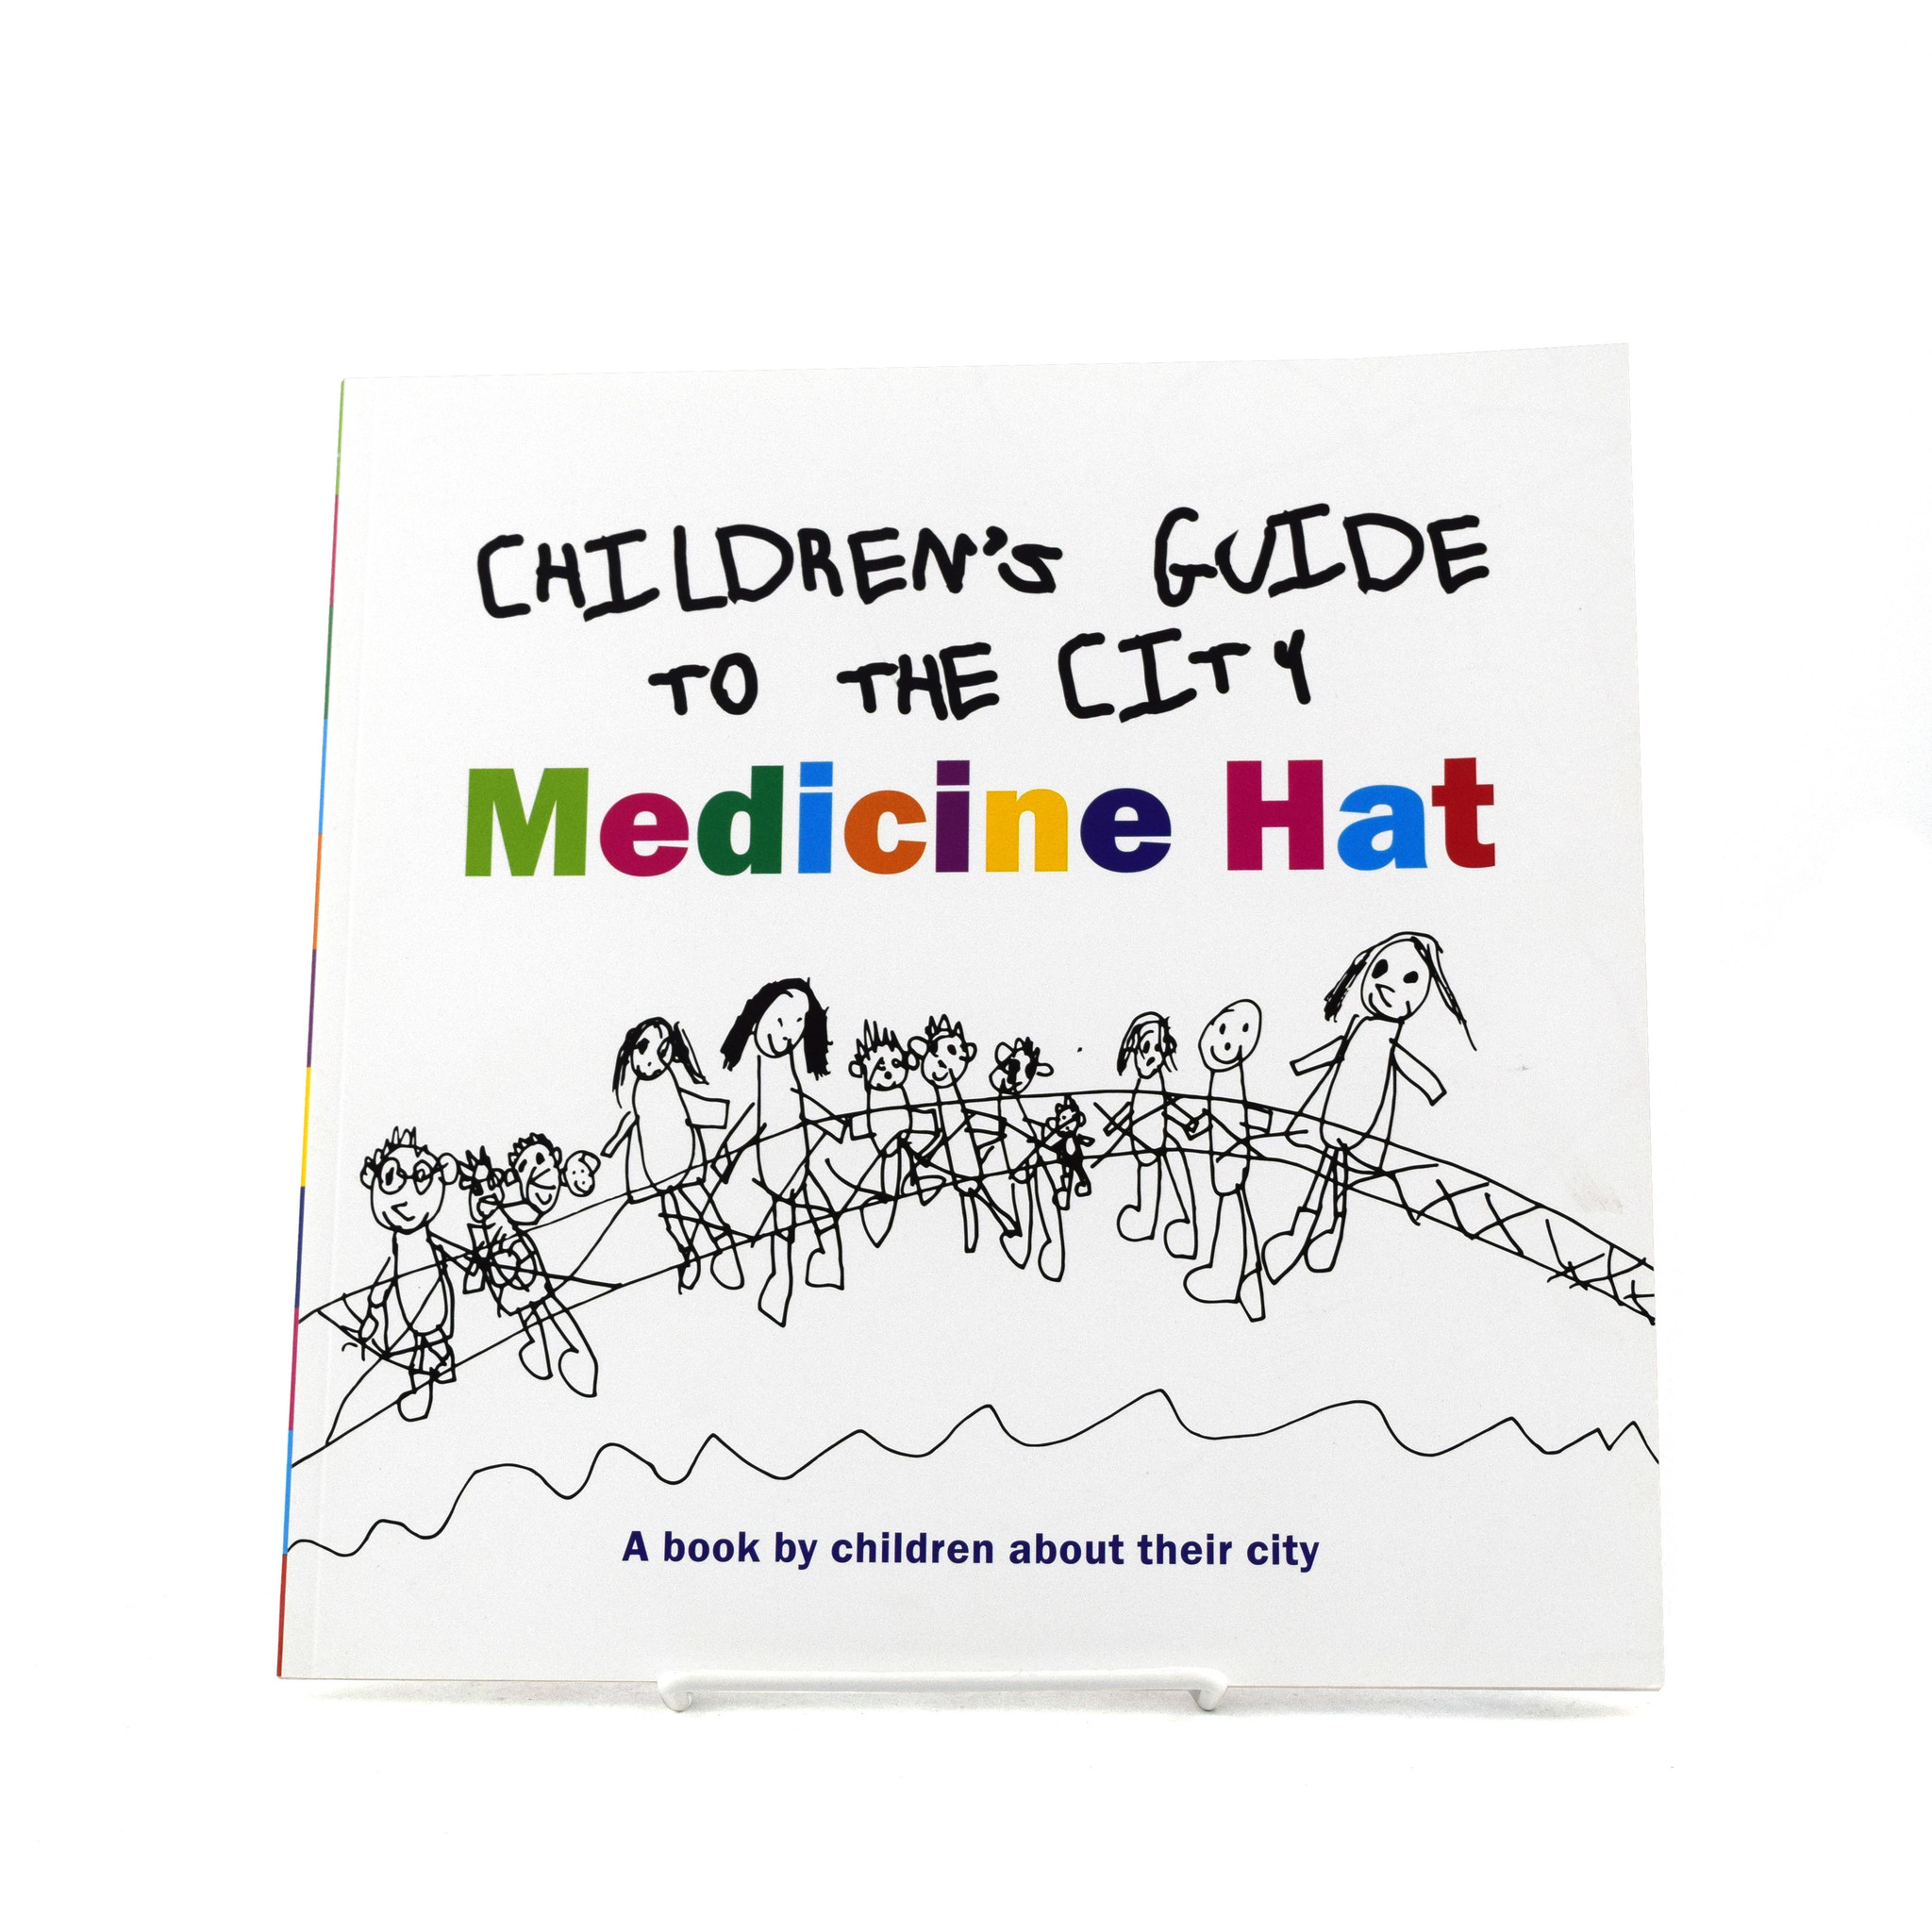 Children's Guide to the City: Medicine Hat